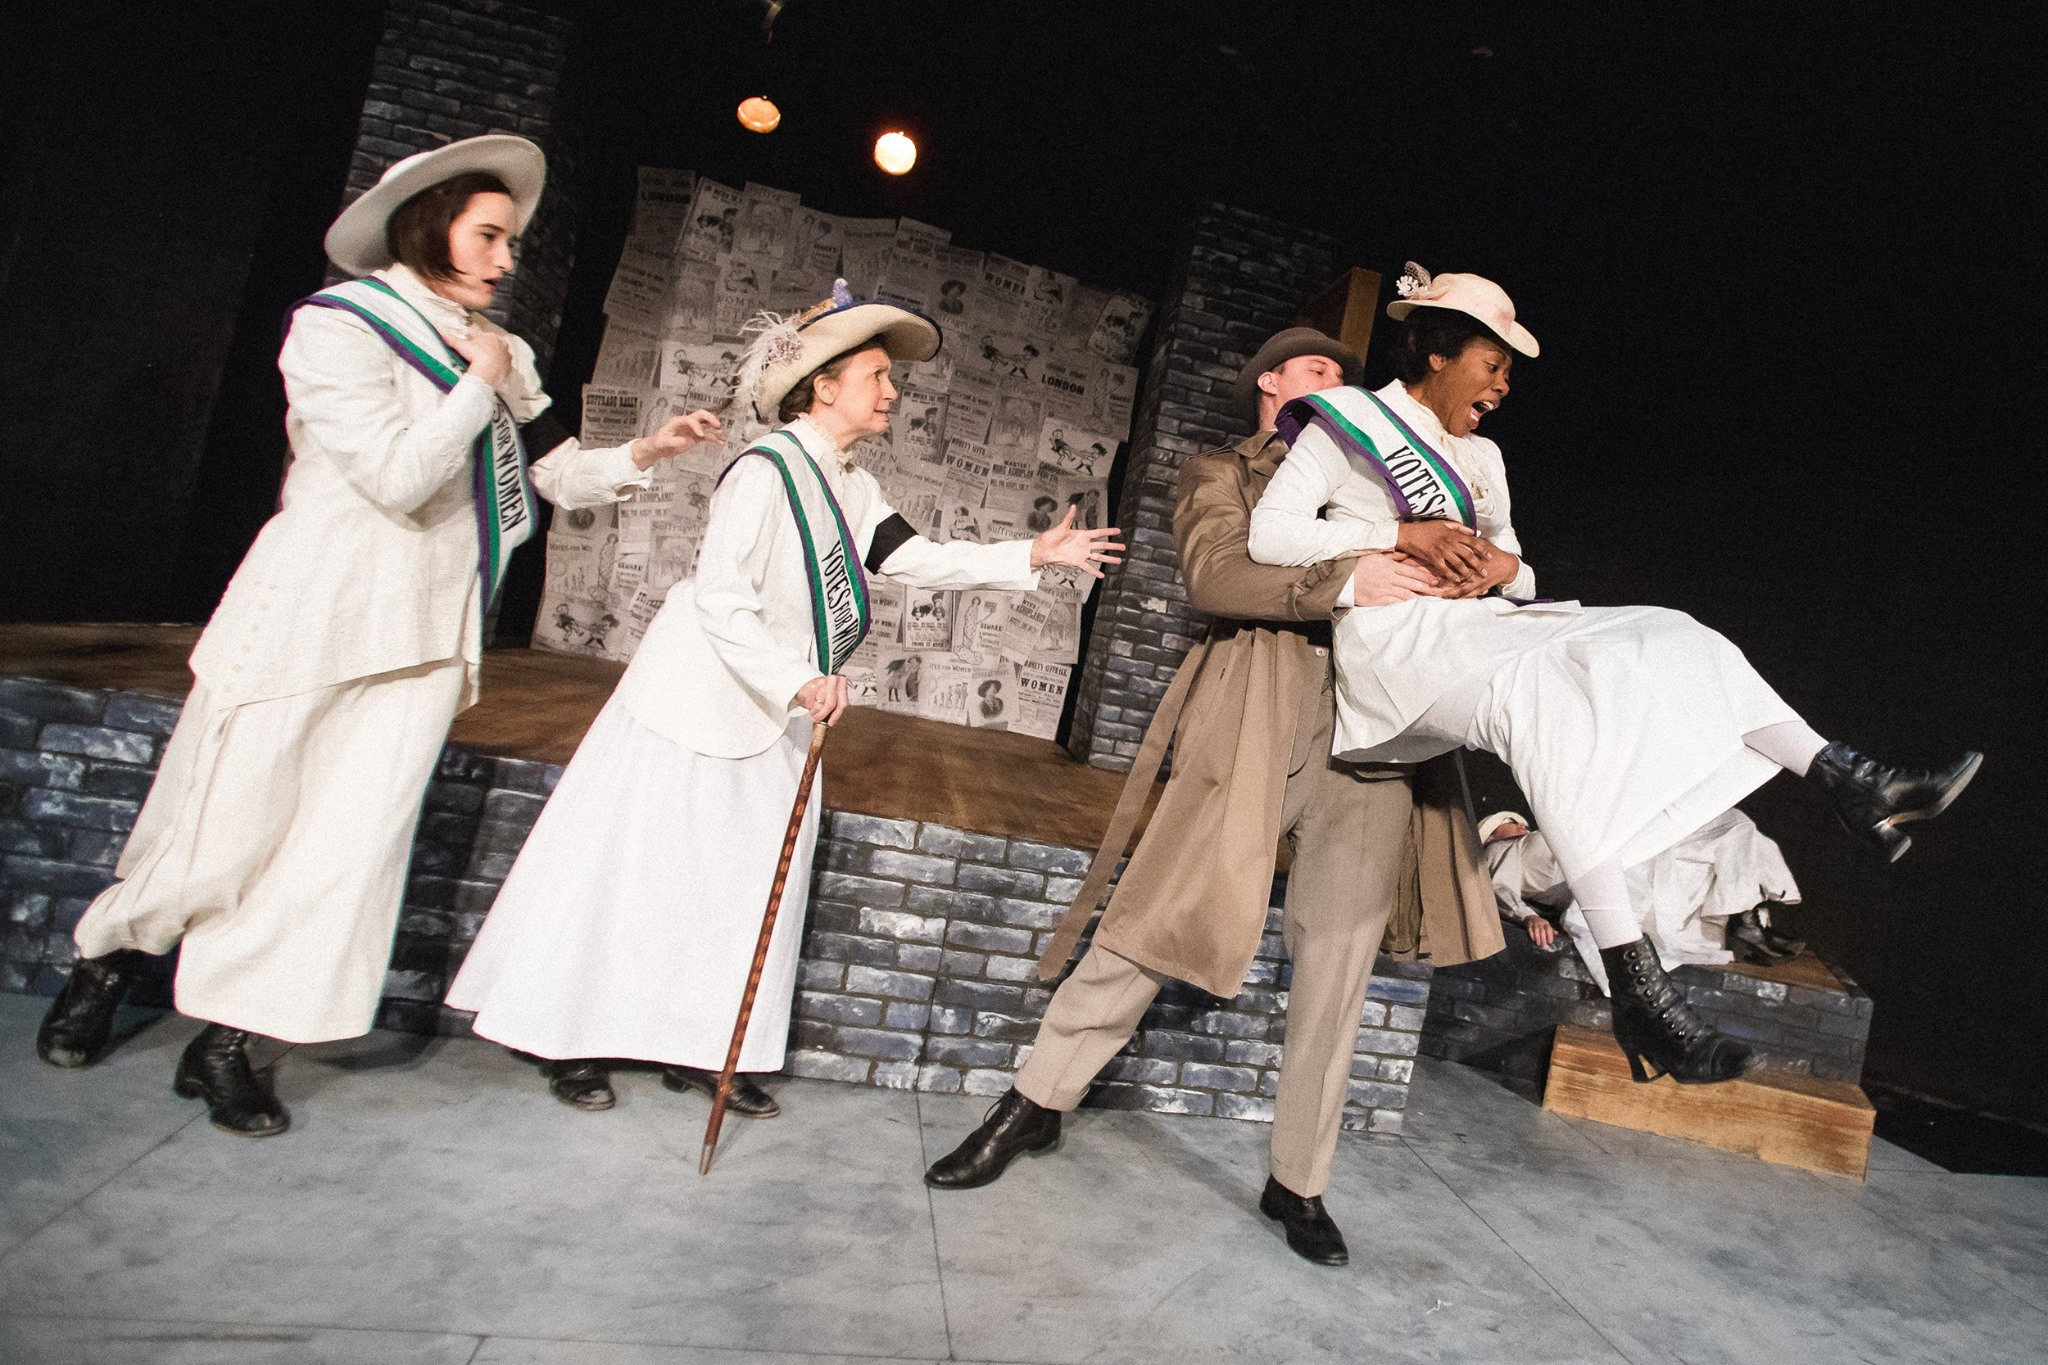 Scottie Caldwell as Gertrude, Jean Marie Koon as Emmeline Pankhurst, David Kaplinsky as the Detective, Arielle Leverett as Grace Roe